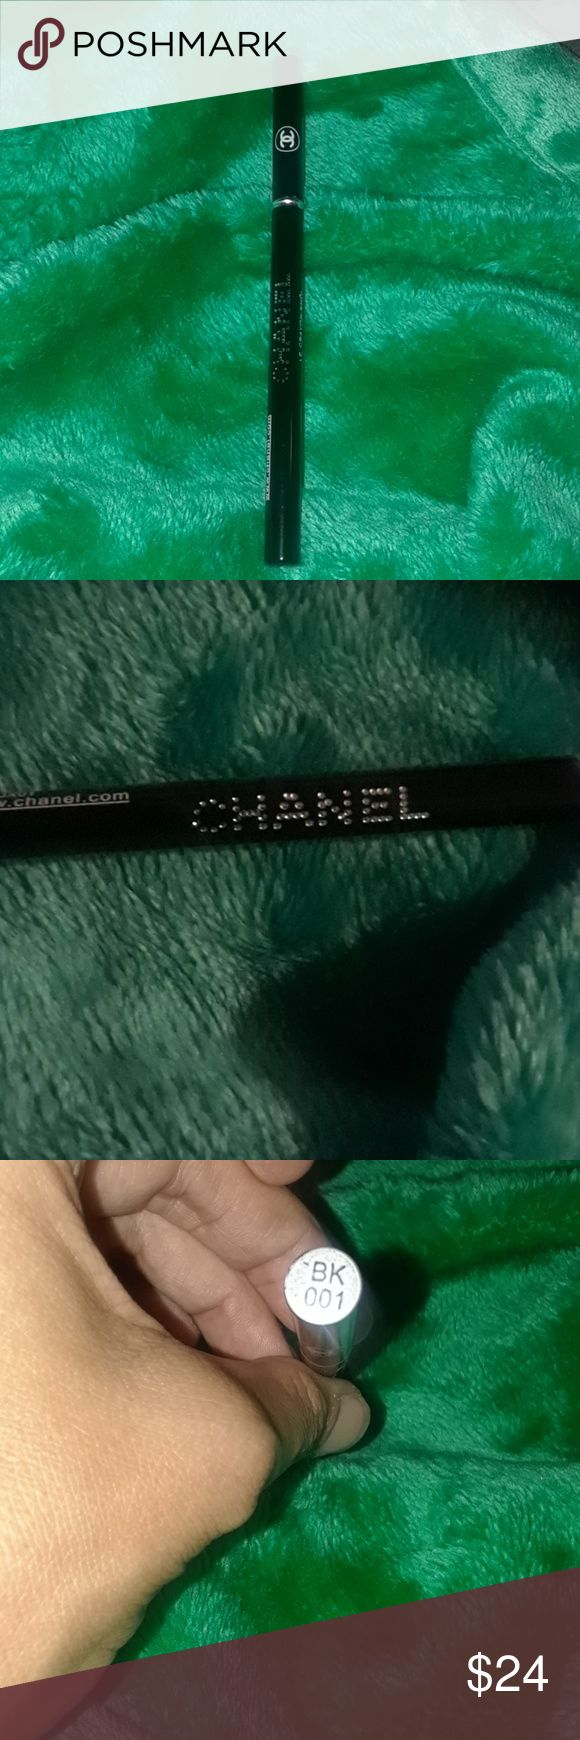 CHANEL Eyebrow pencil Authentic Brand New, Never used. No box. CHANEL Makeup Eyebrow Filler